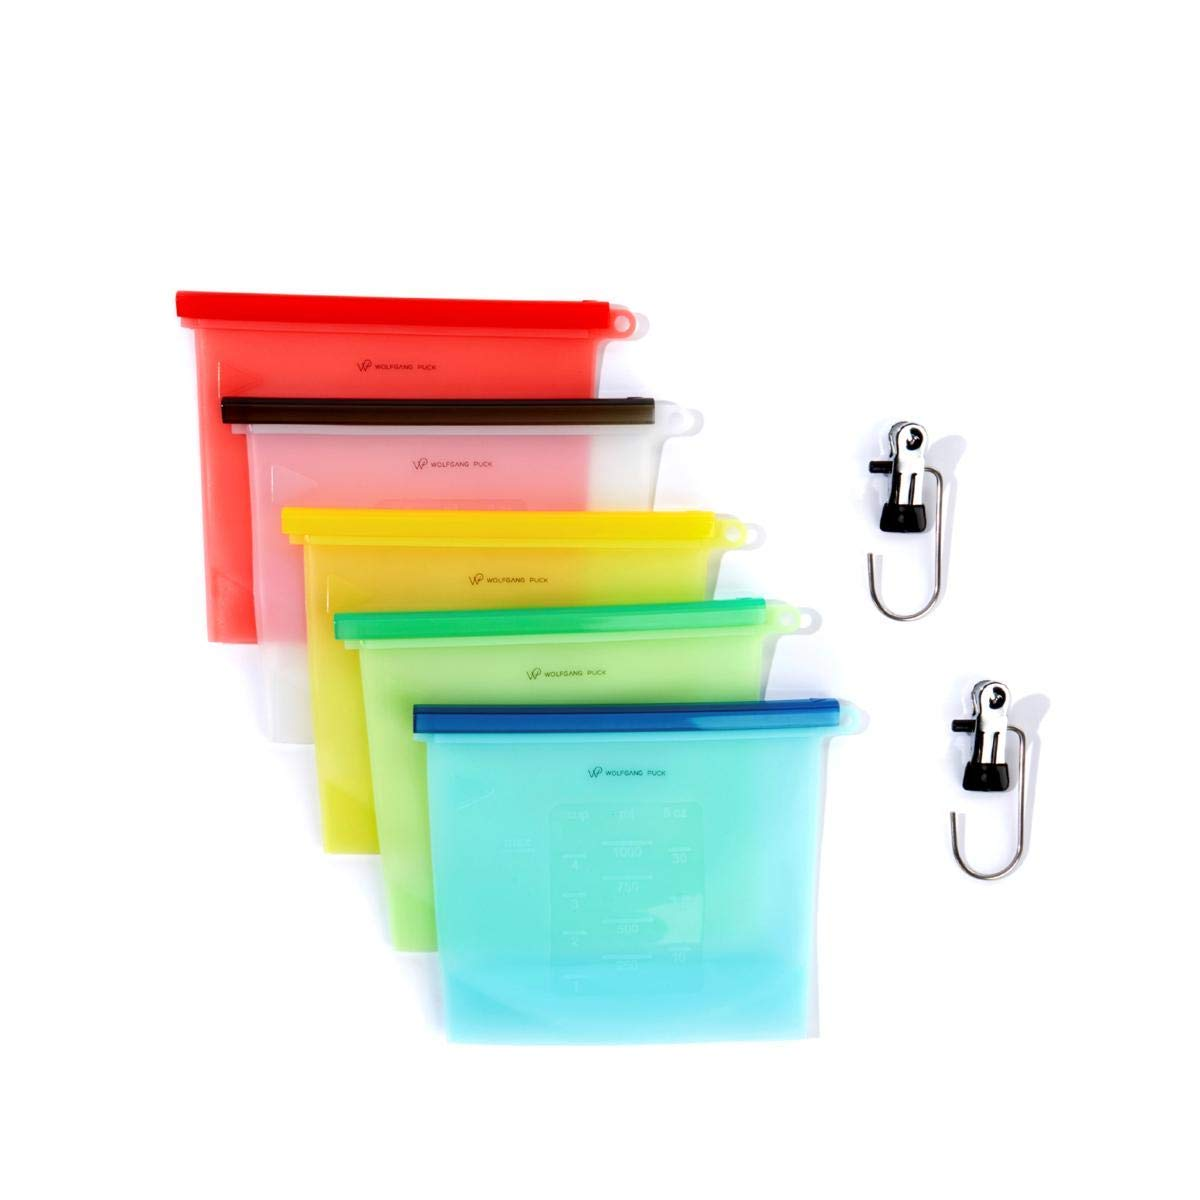 Wolfgang Puck Silicone Bag and Clip 7-piece Set Model 618-508 (Renewed)